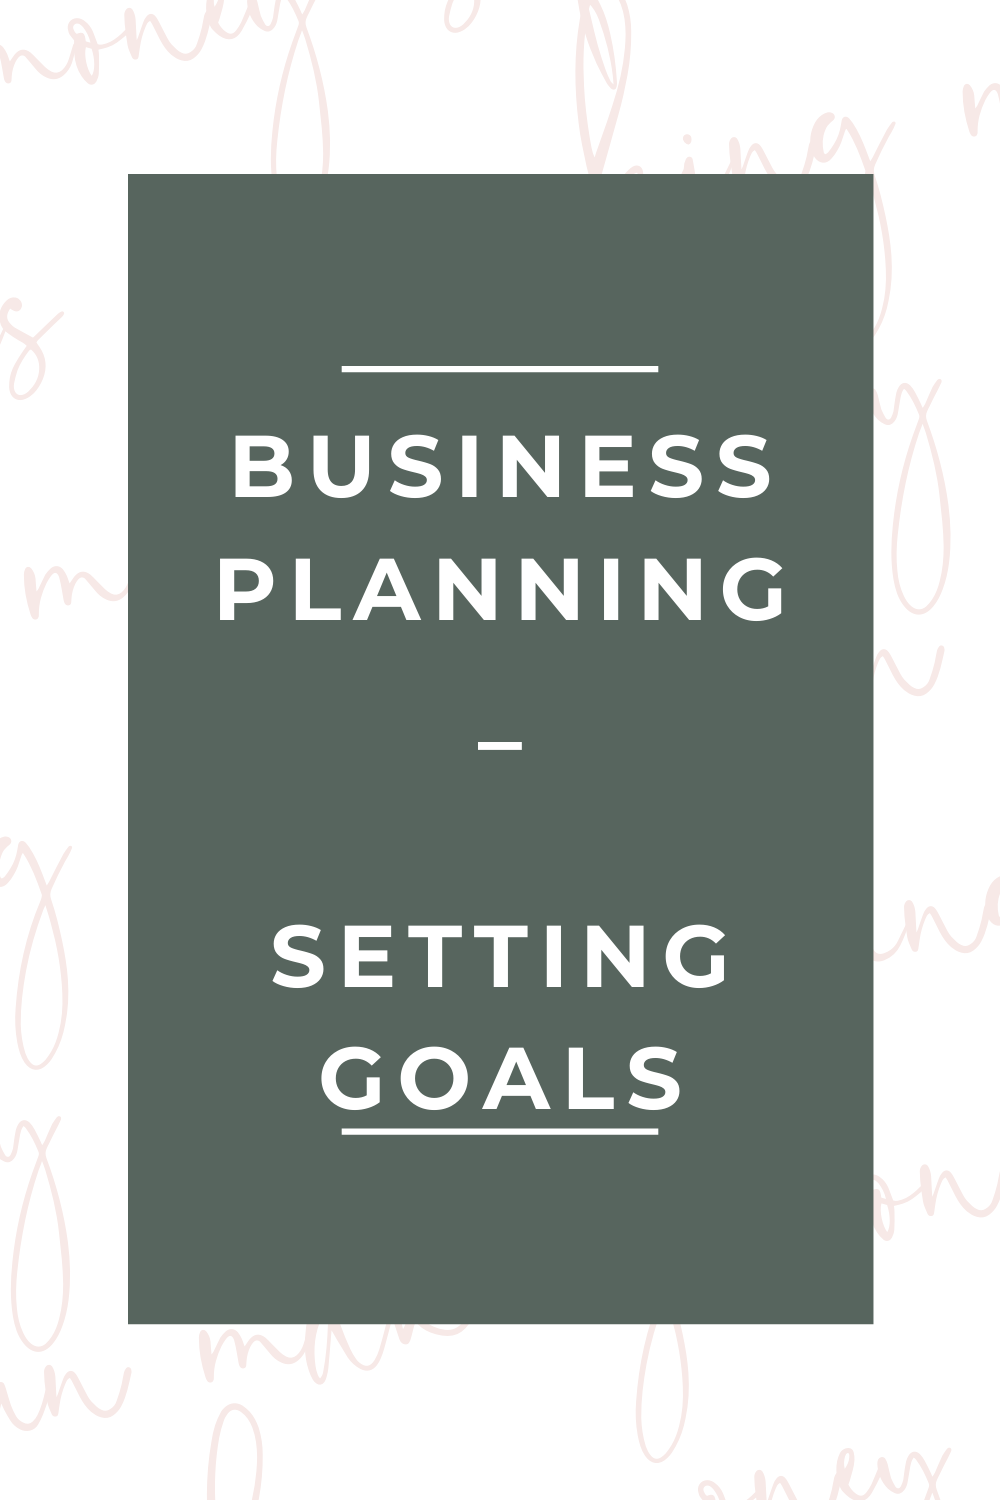 business planning part 4 setting goals